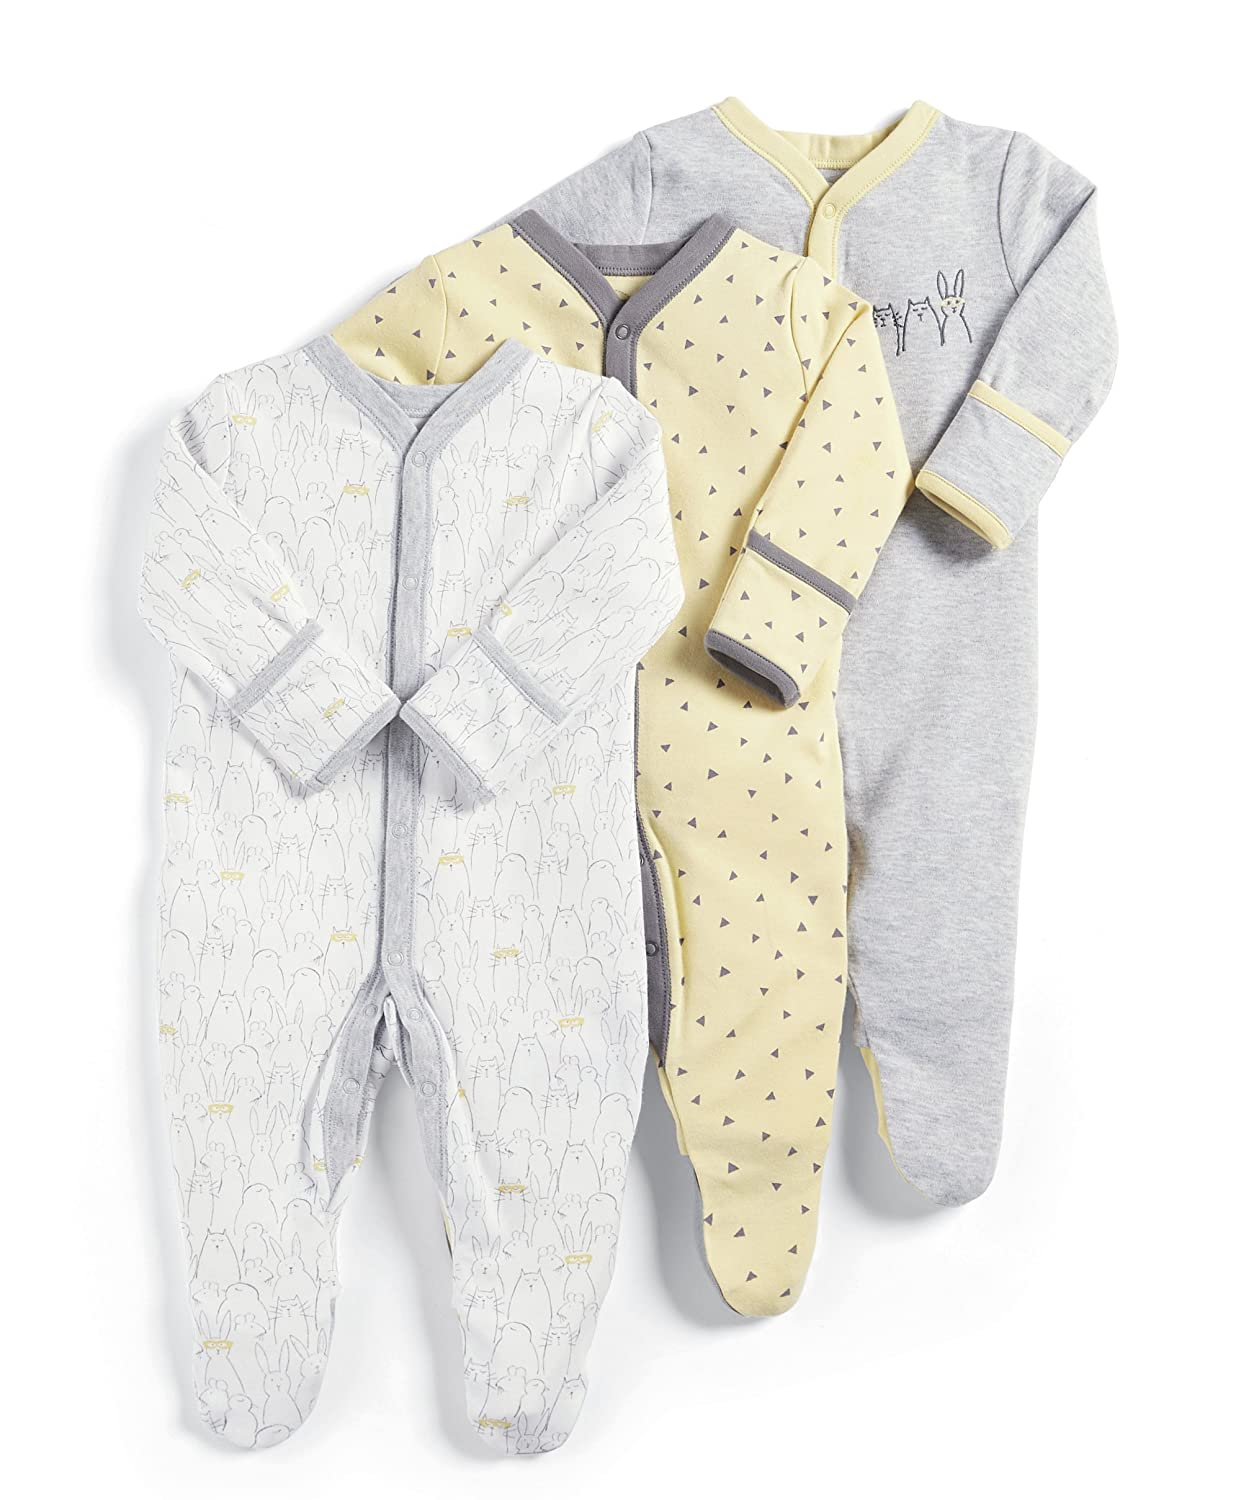 Mamas & Papas Baby Footies Pack of 3 Mamas and Papas